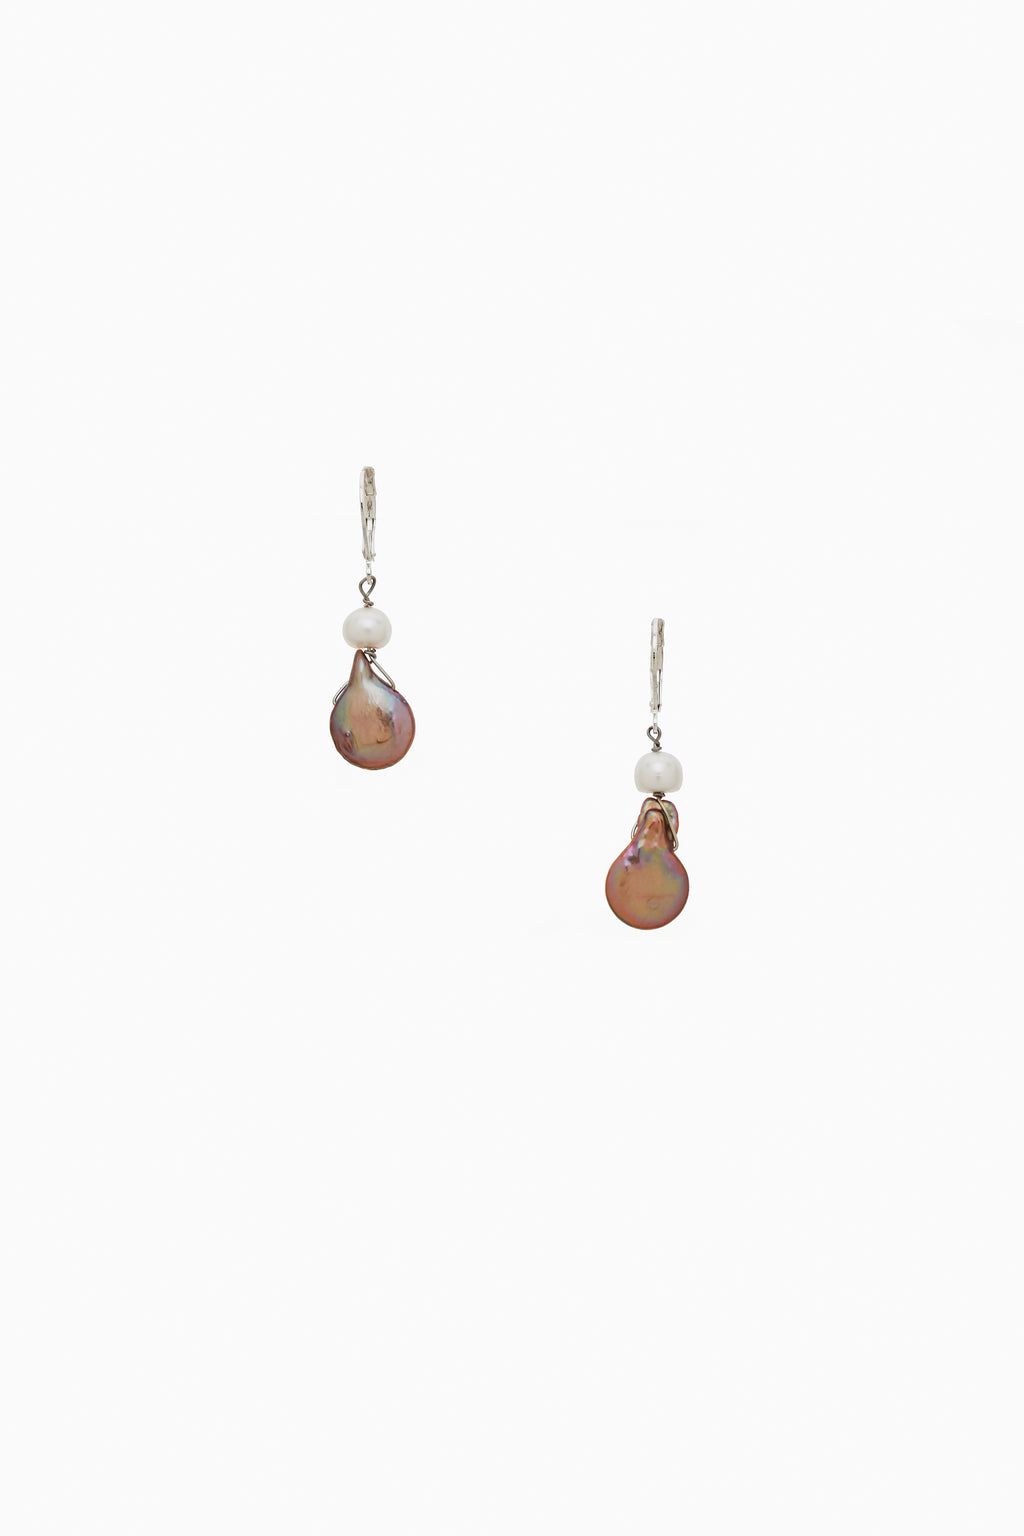 White Freshwater Pearl with Bronze Toned Coin Pearl Earrings